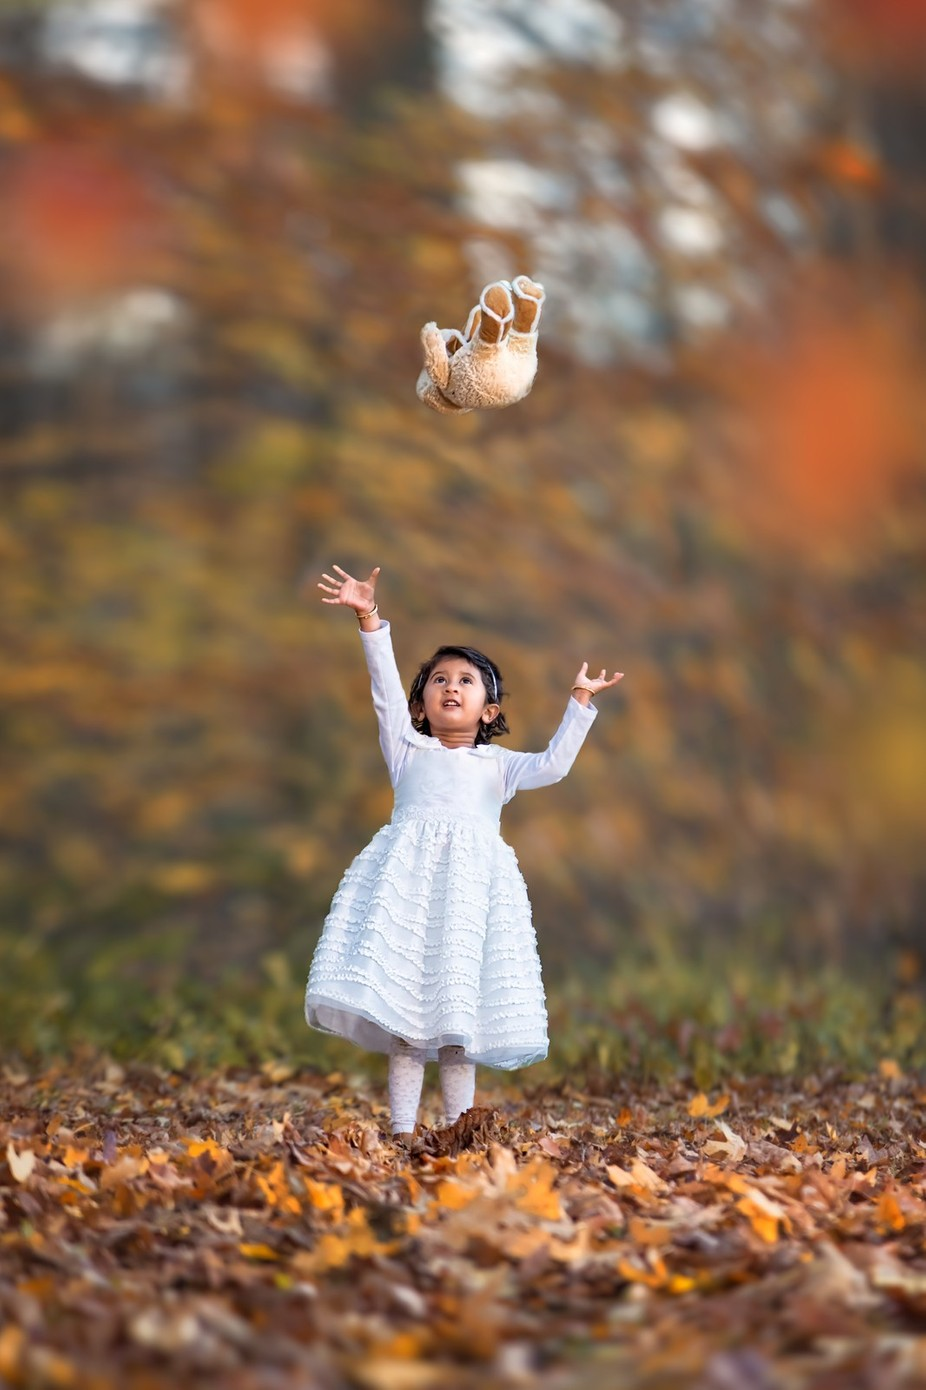 Tossing Teddy by sushmitasadhukhan - Happy Moments Photo Contest